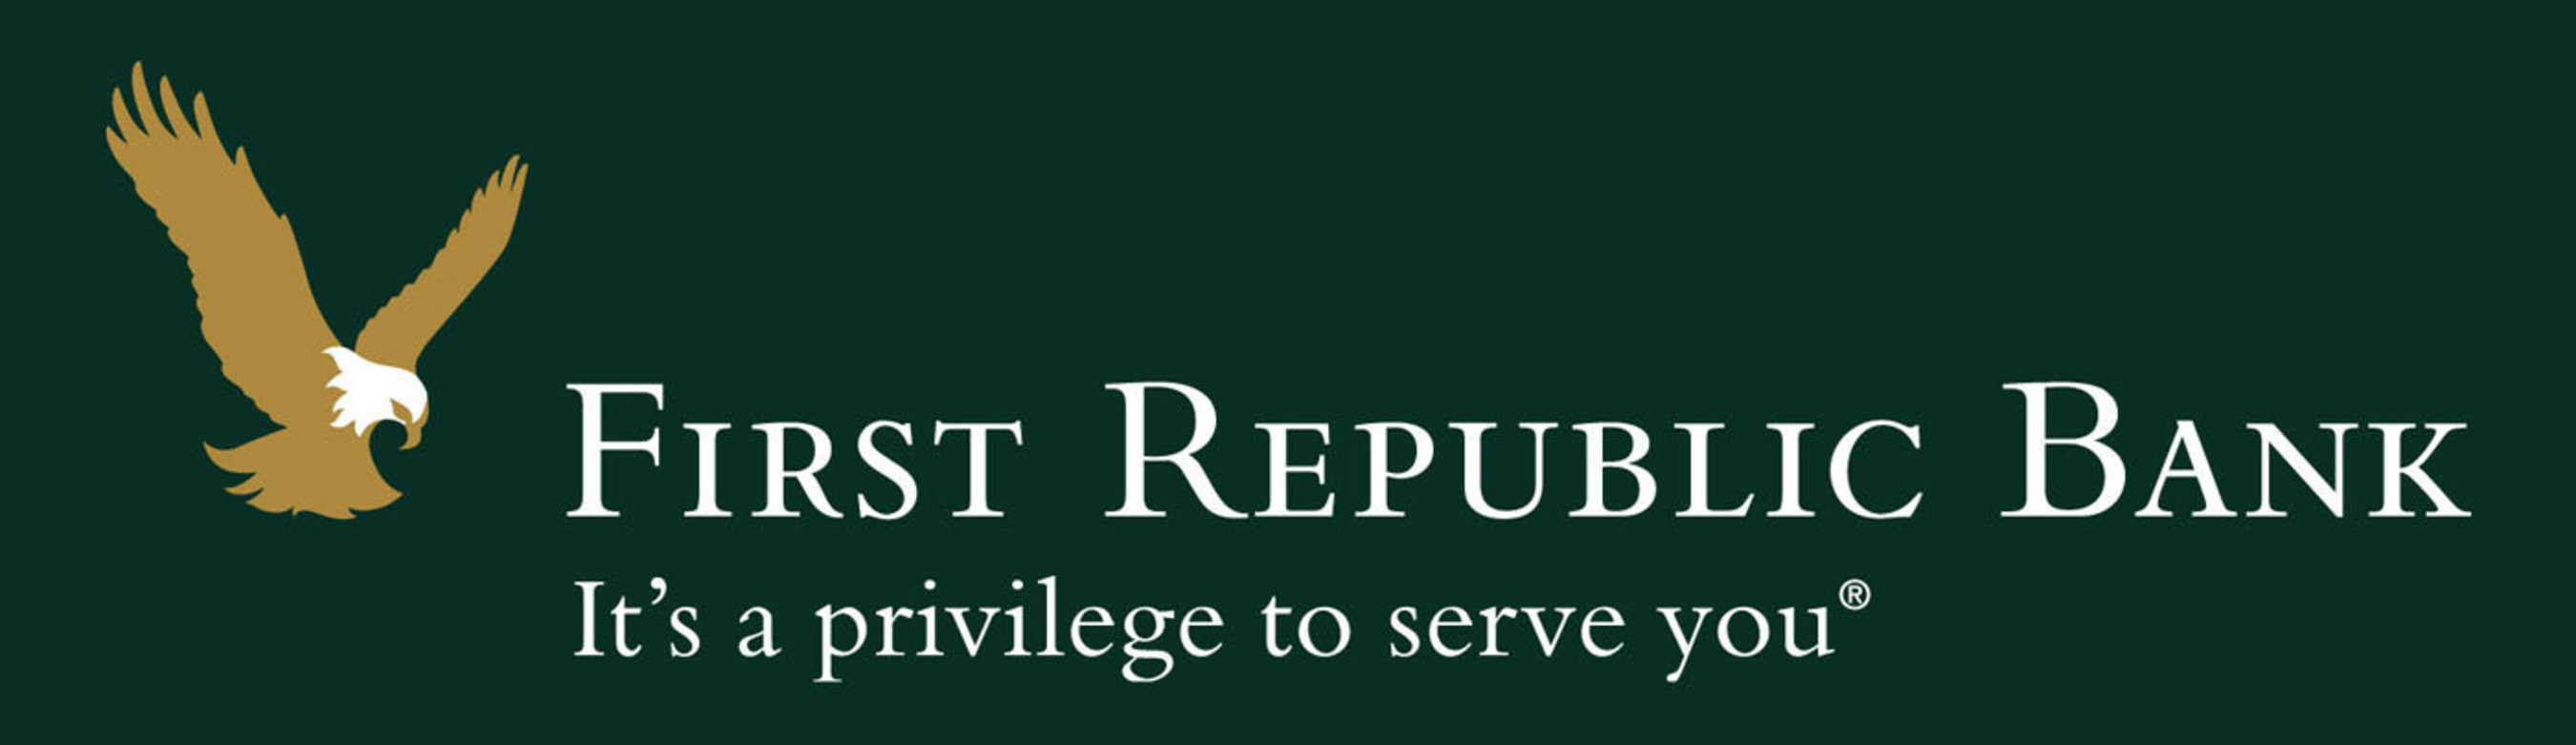 First Republic Bank's logo.